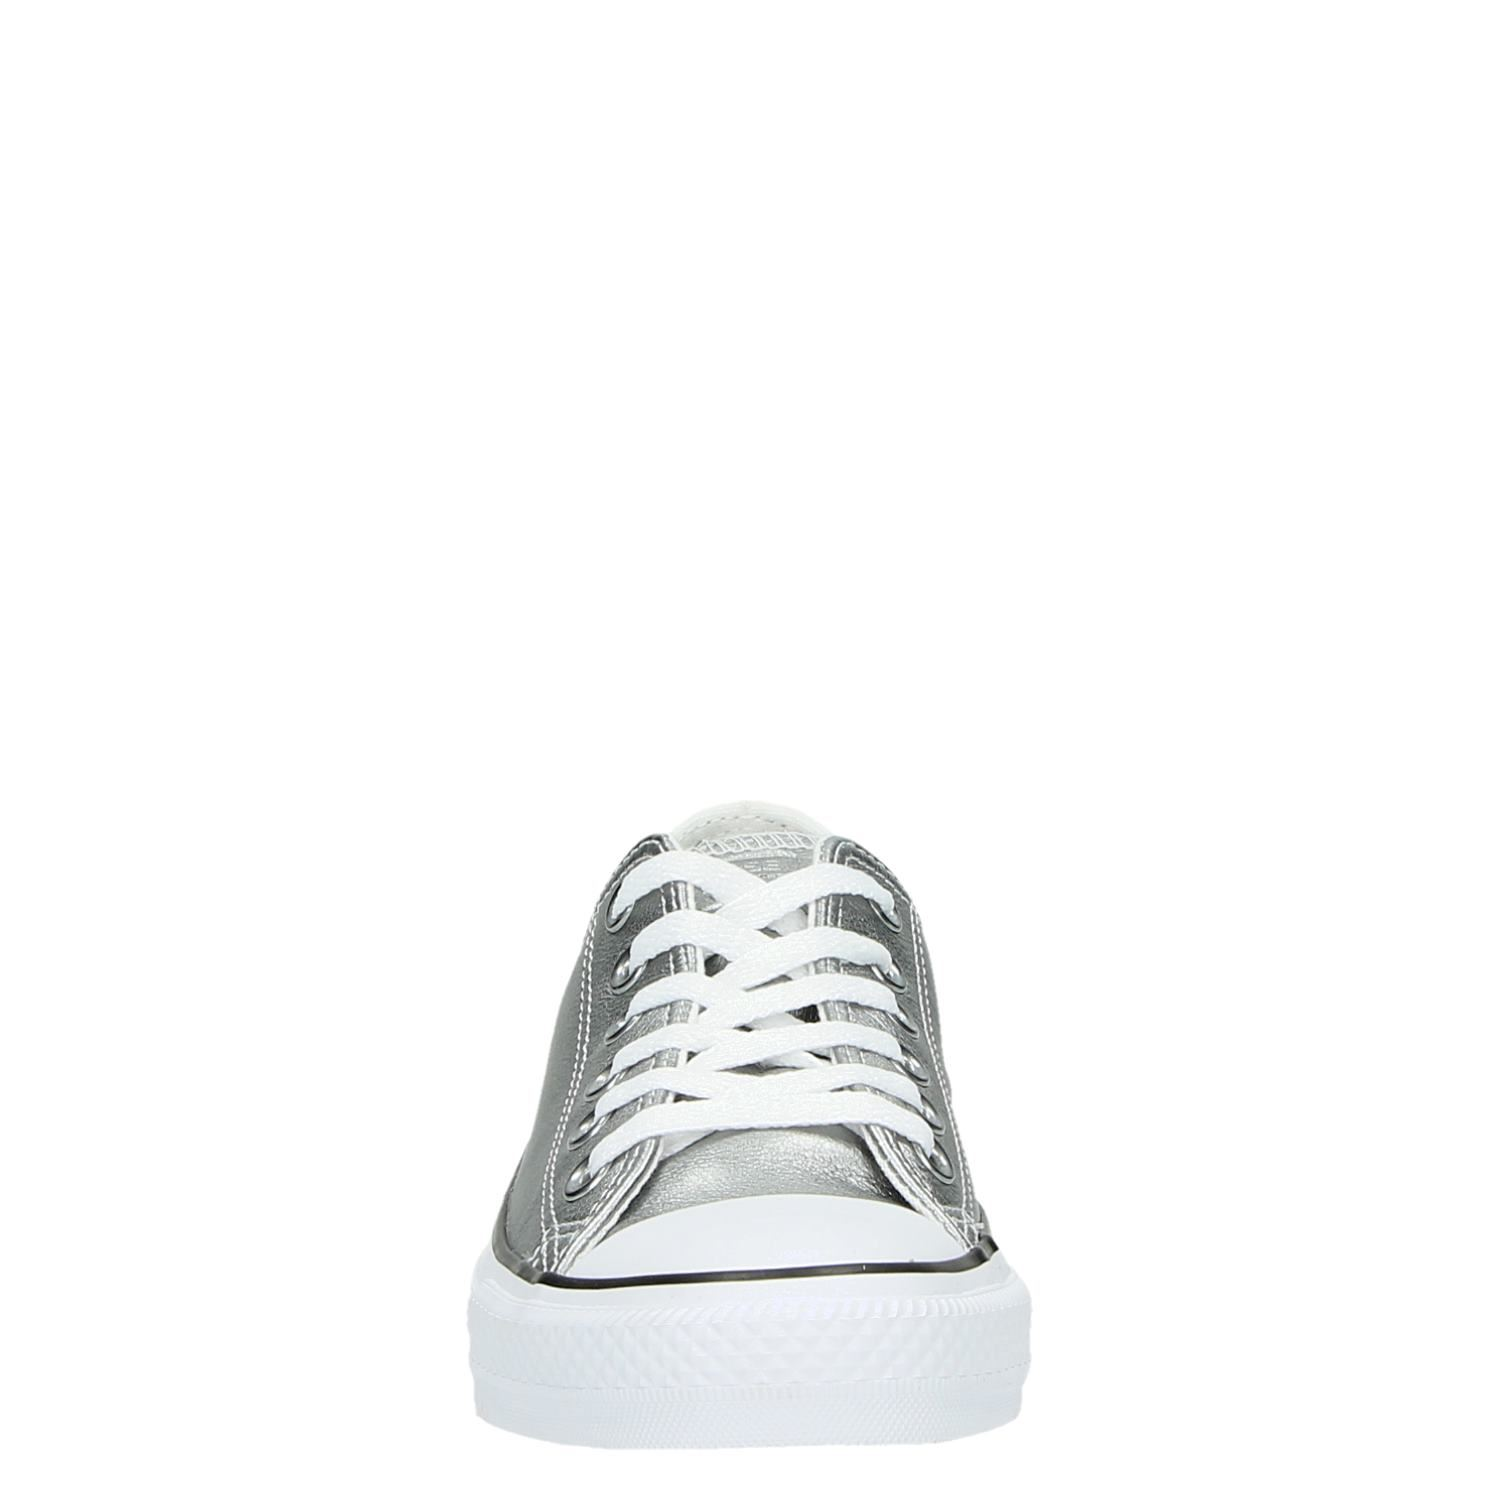 Converse All Star Lage Dames Sneakers Zilver m0wN8n